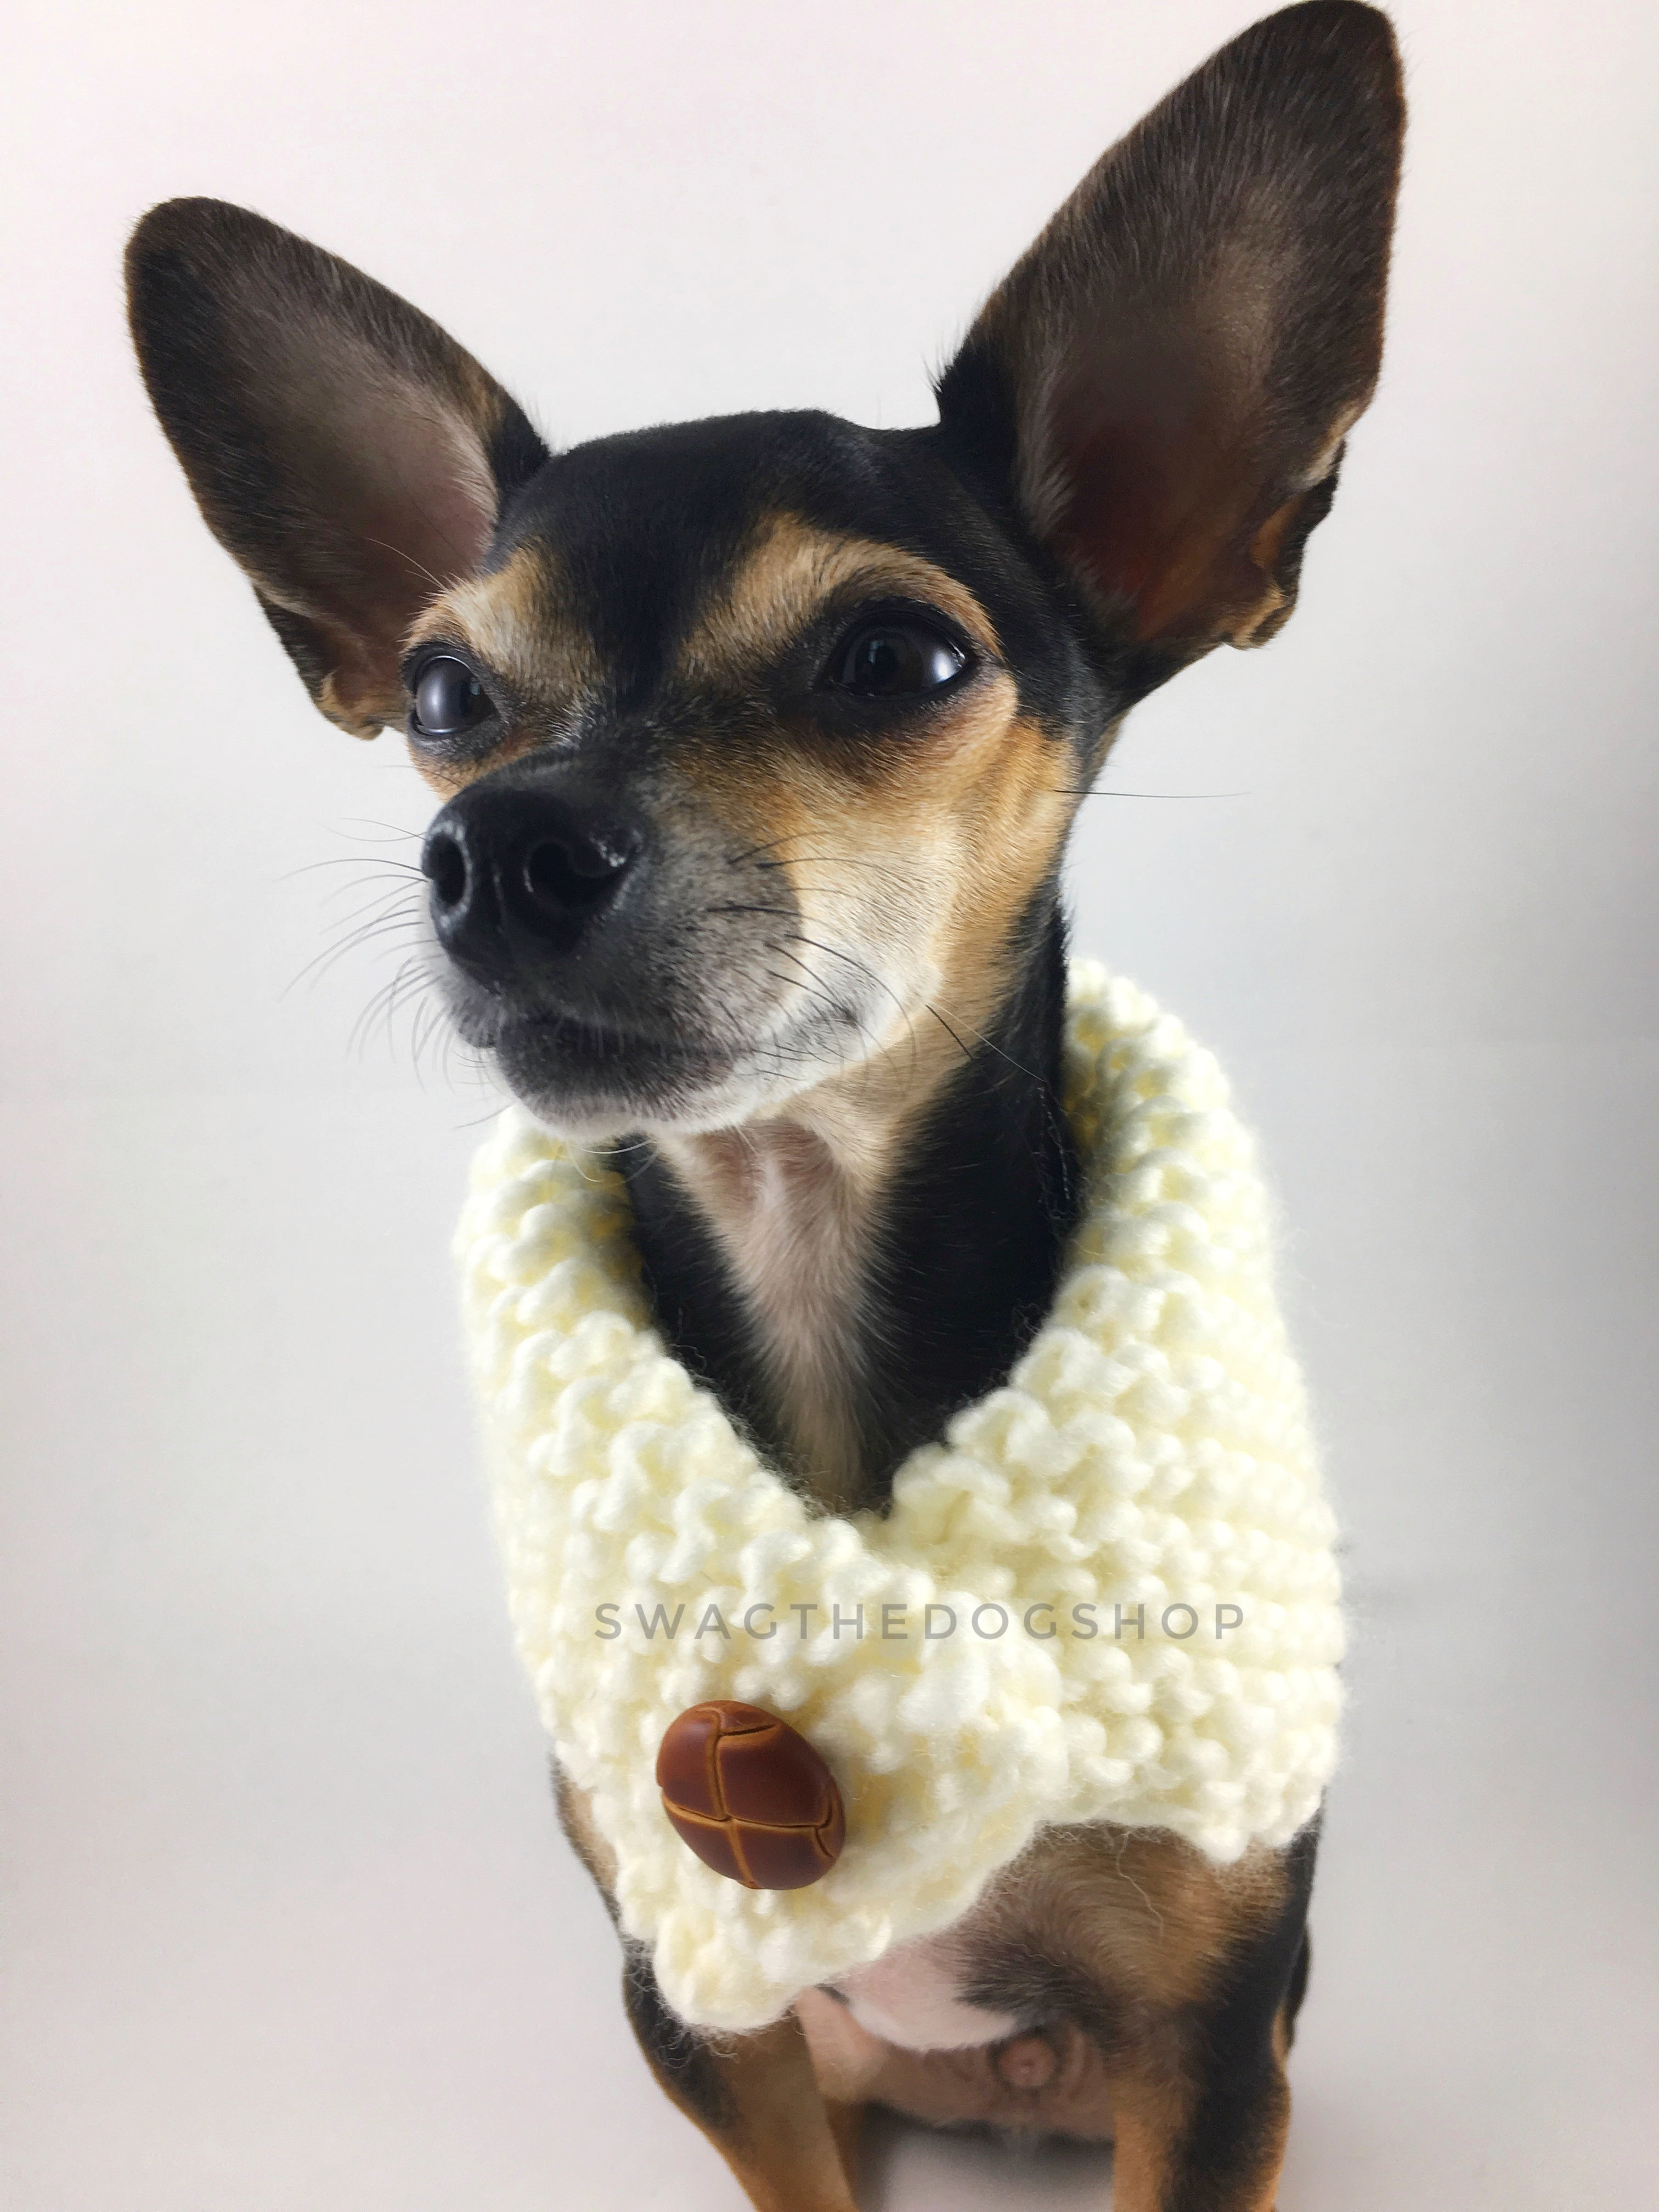 Winter Cream Swagsnood - Close Up View of Cute Chihuahua Dog Wearing Winter Cream Color Dog Snood  with Accent Button